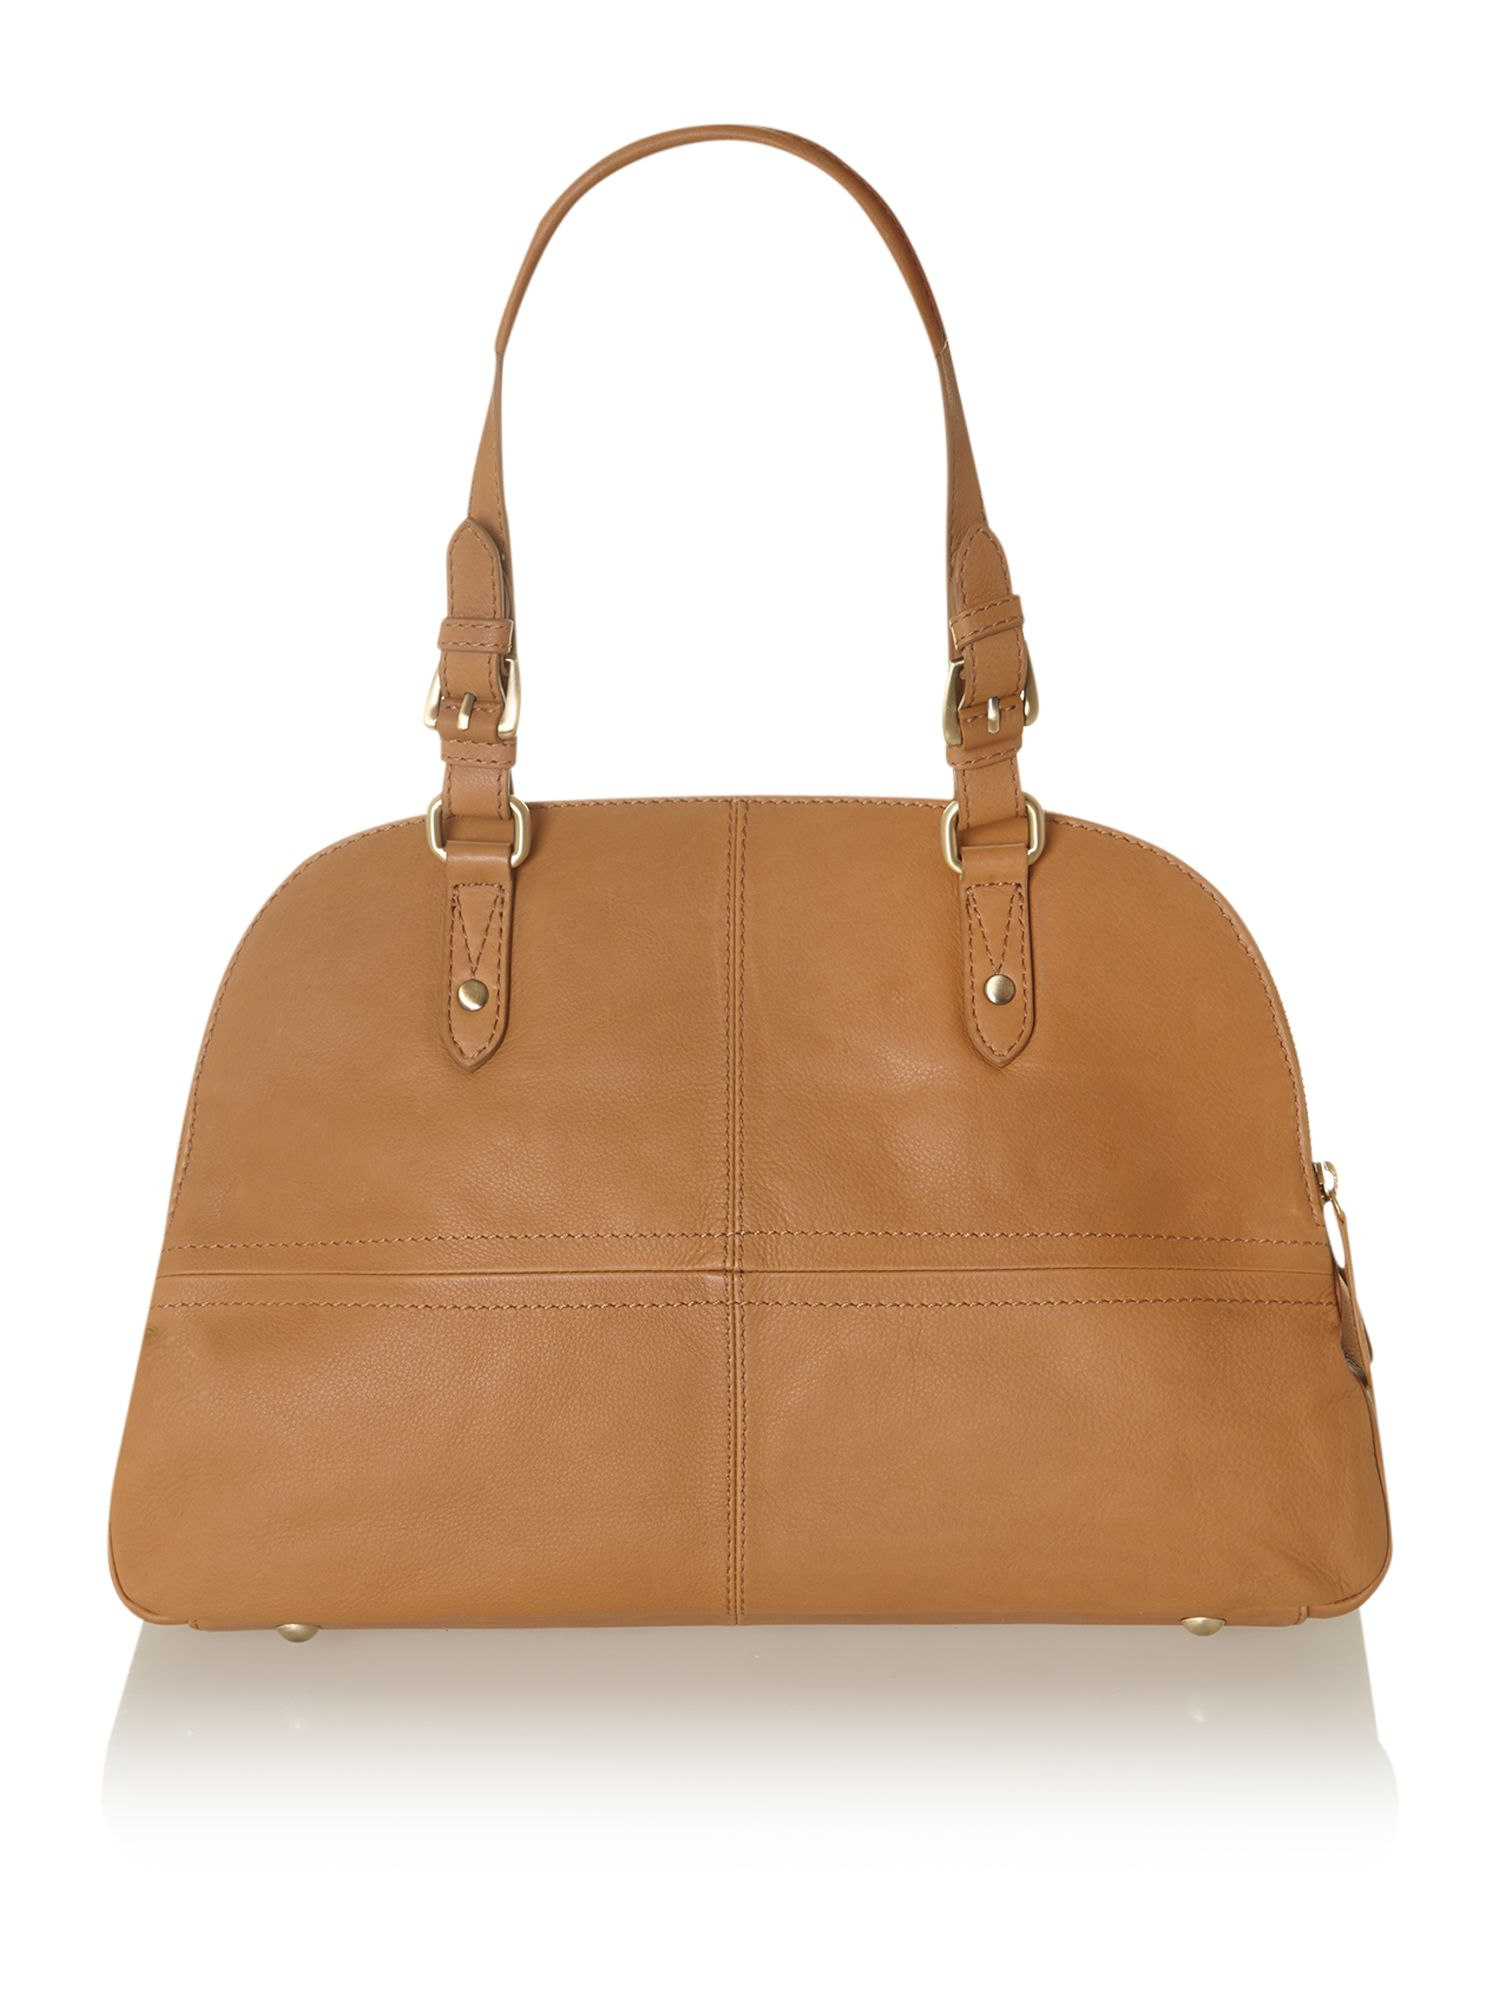 Susie triple compartment bag